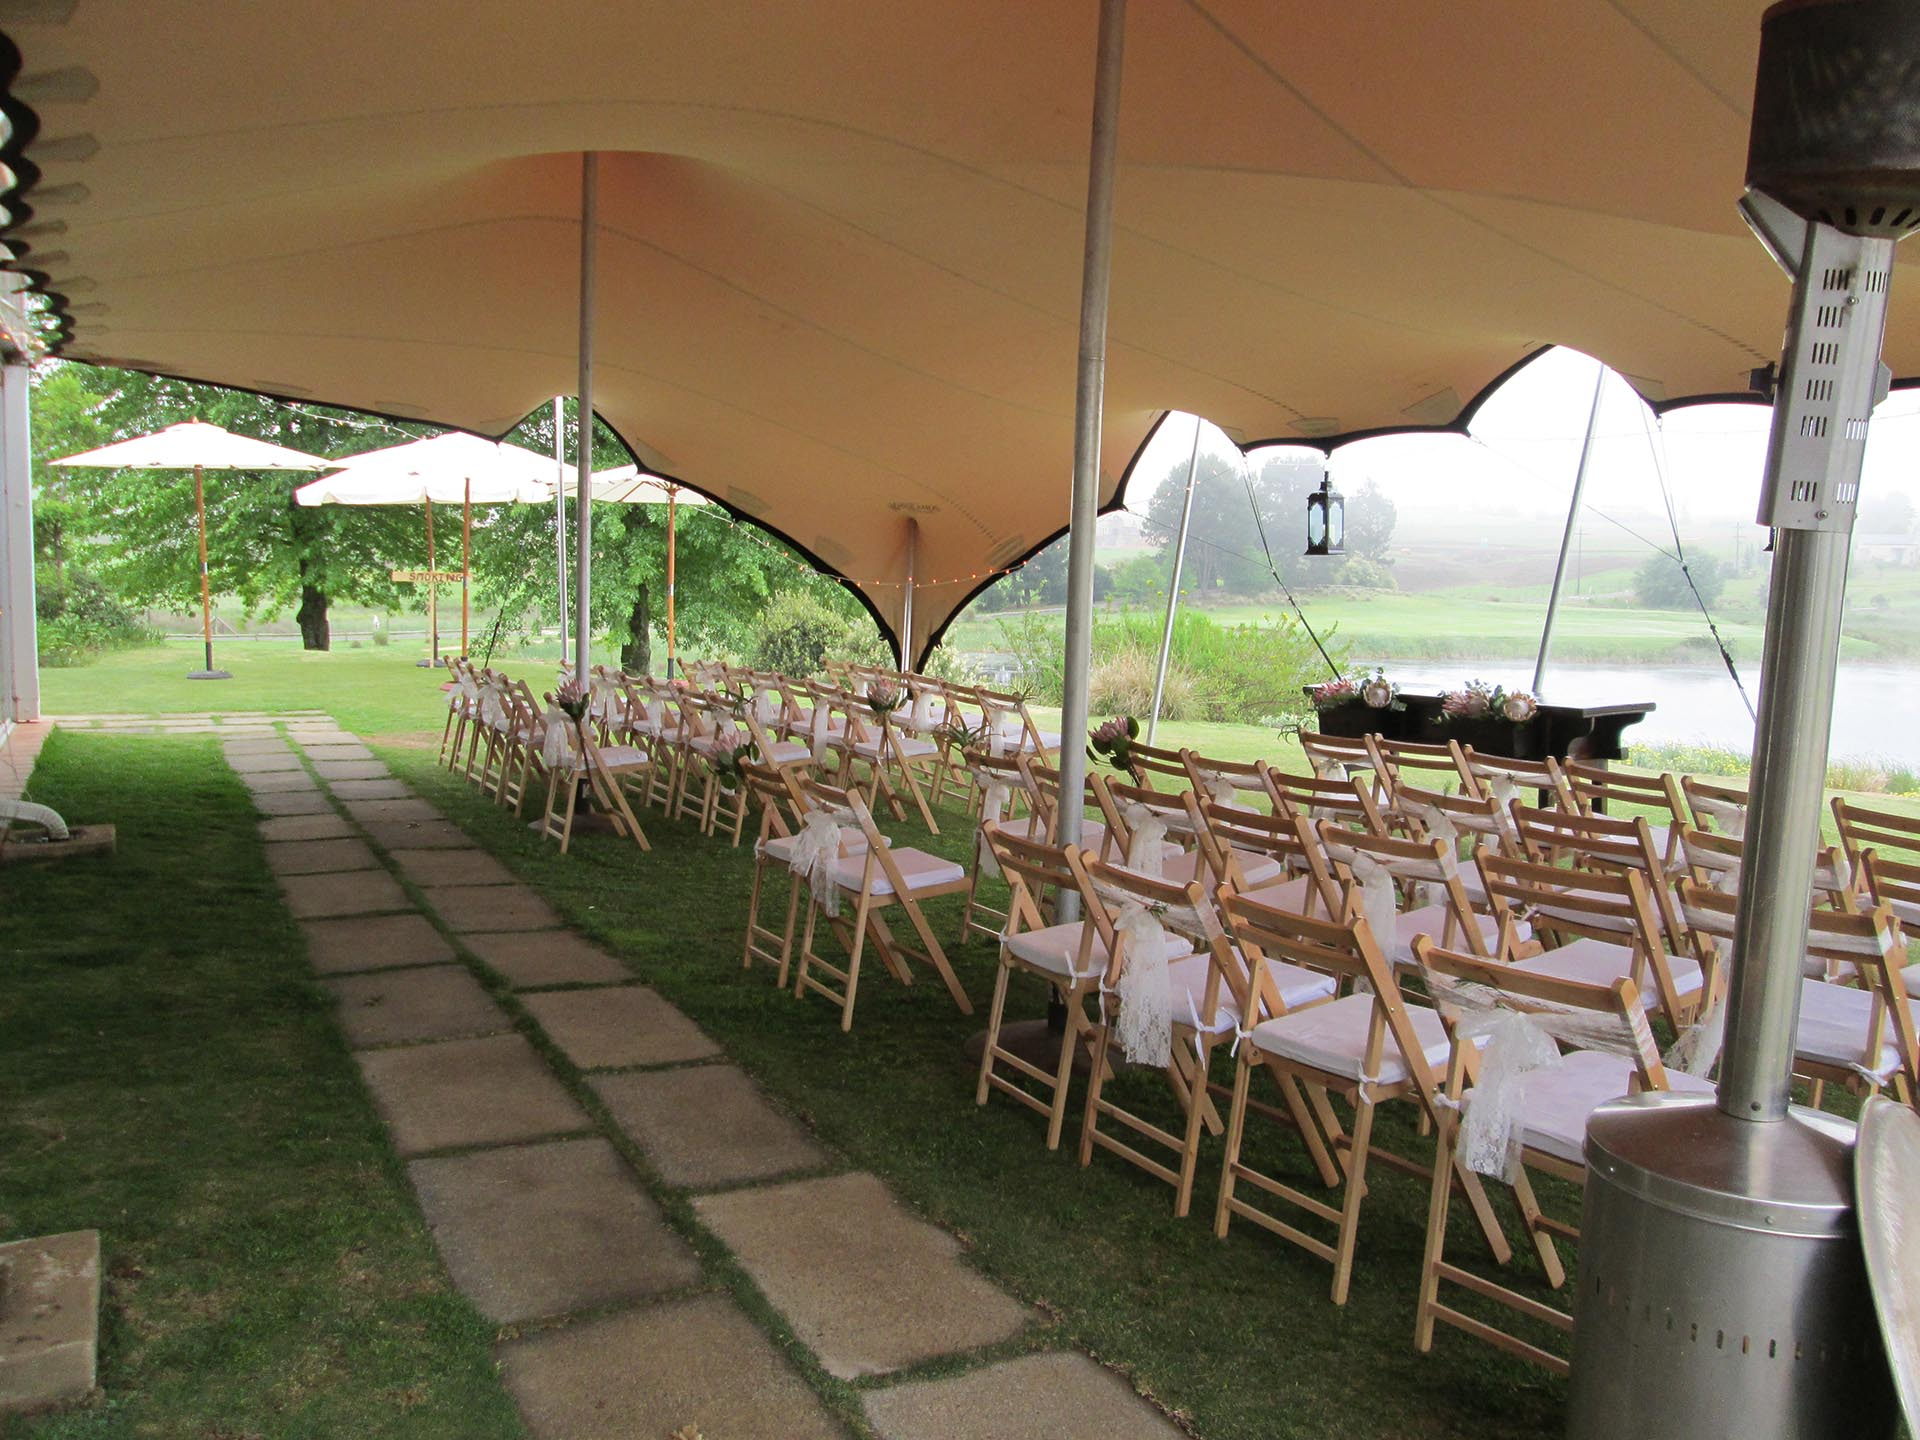 weddings-functions-front-of-clubhouse-gowrie-farm-Nottingham-Road-midlands-kzn